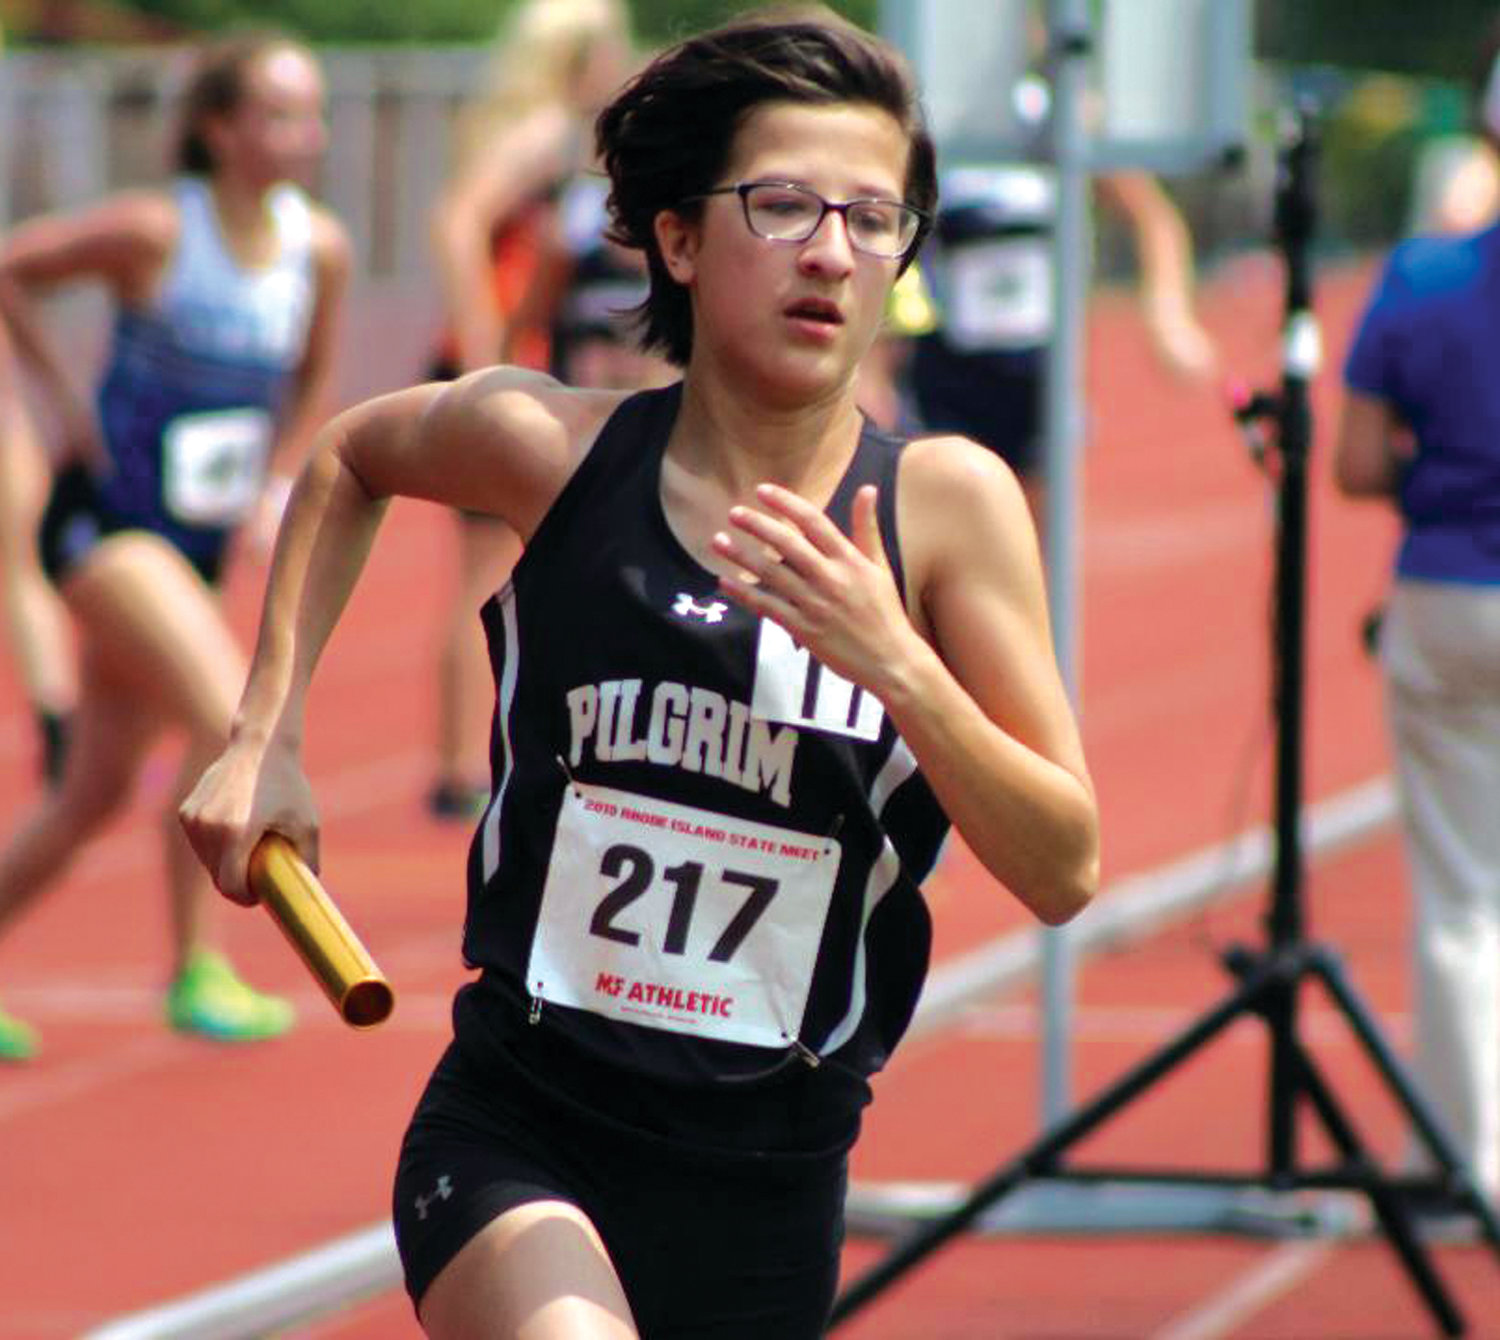 HITTING THE TRACK: Pilgrim's Ava McCann competes in a relay race.